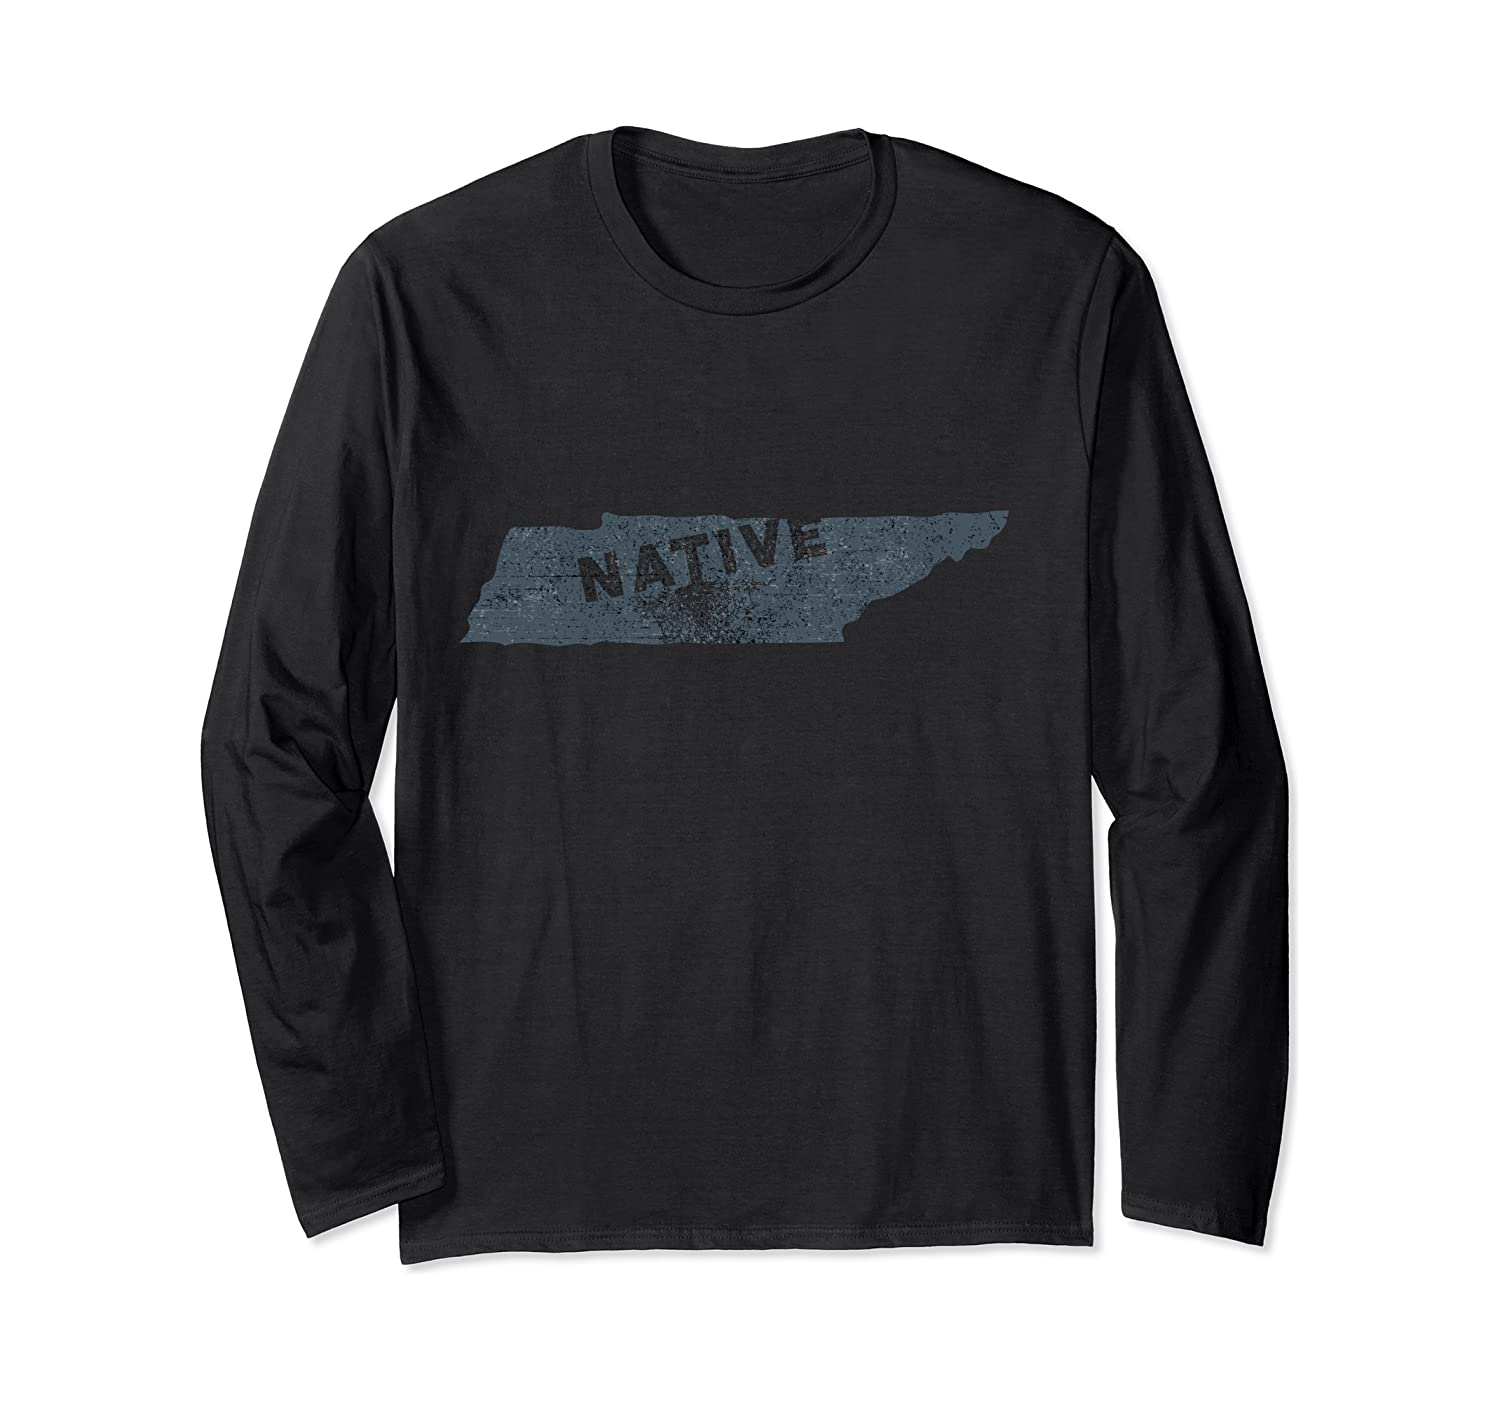 Home State Native Tennessee Long Sleeve T-Shirt